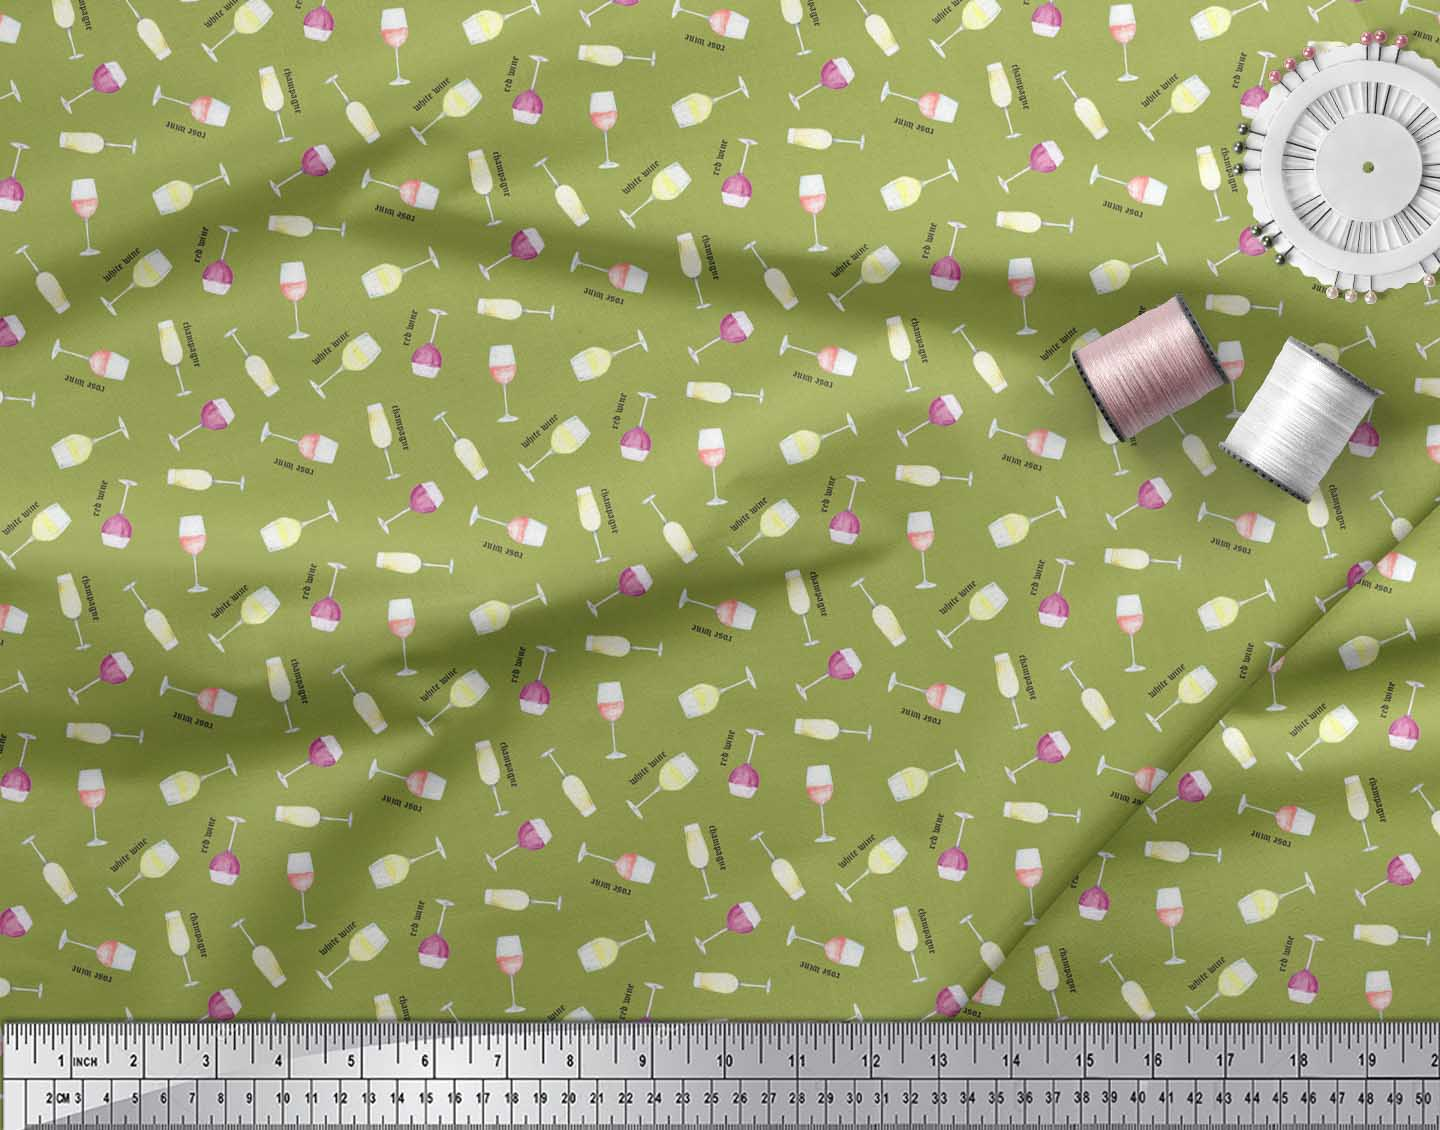 Soimoi-Green-Cotton-Poplin-Fabric-Text-amp-Wine-Glass-Bar-Print-Fabric-K5R thumbnail 4